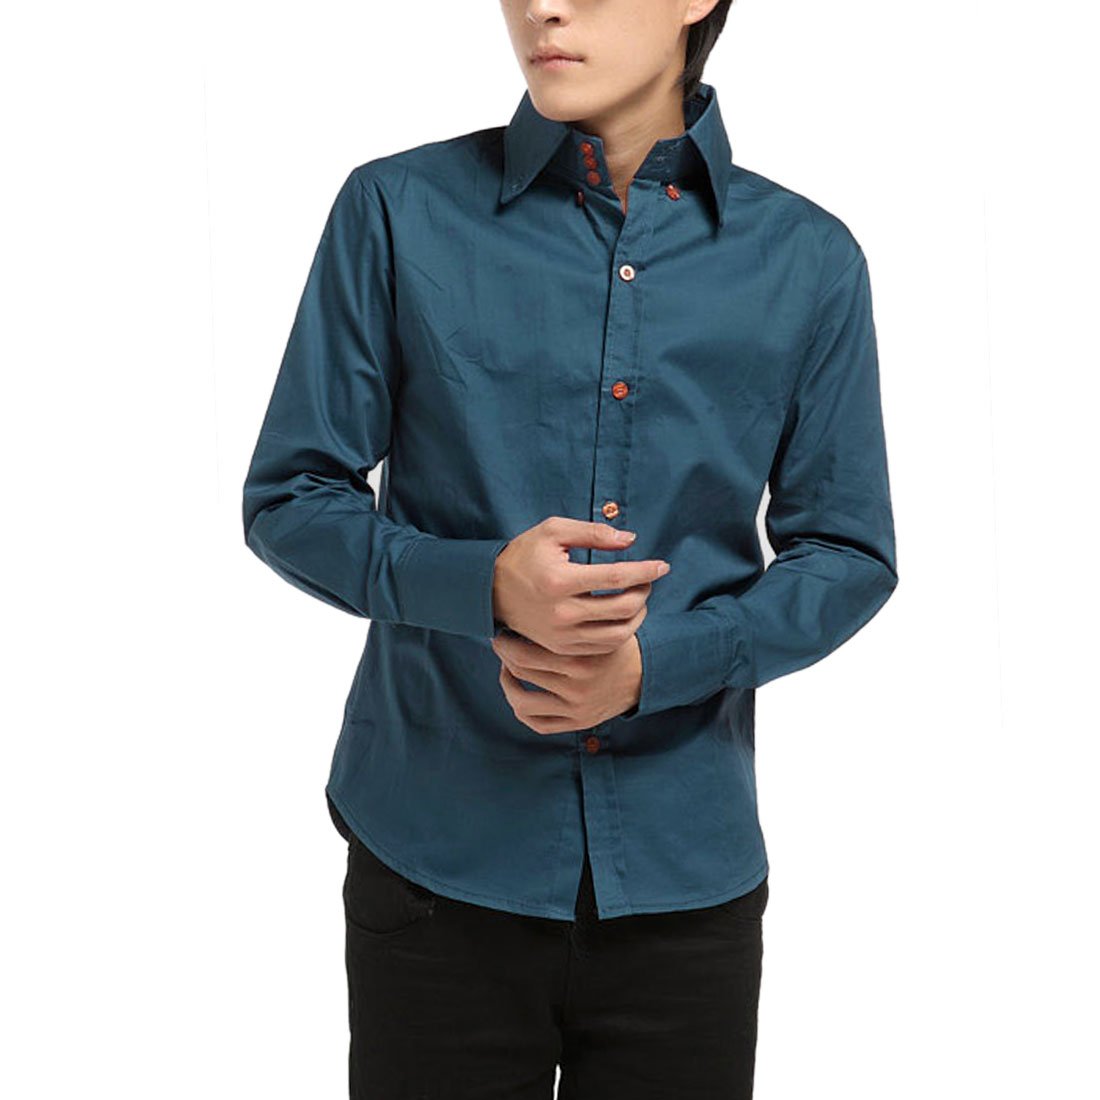 Casual Men Long Sleeve Button Up Point Collar Teal Blue Shirt Tops M